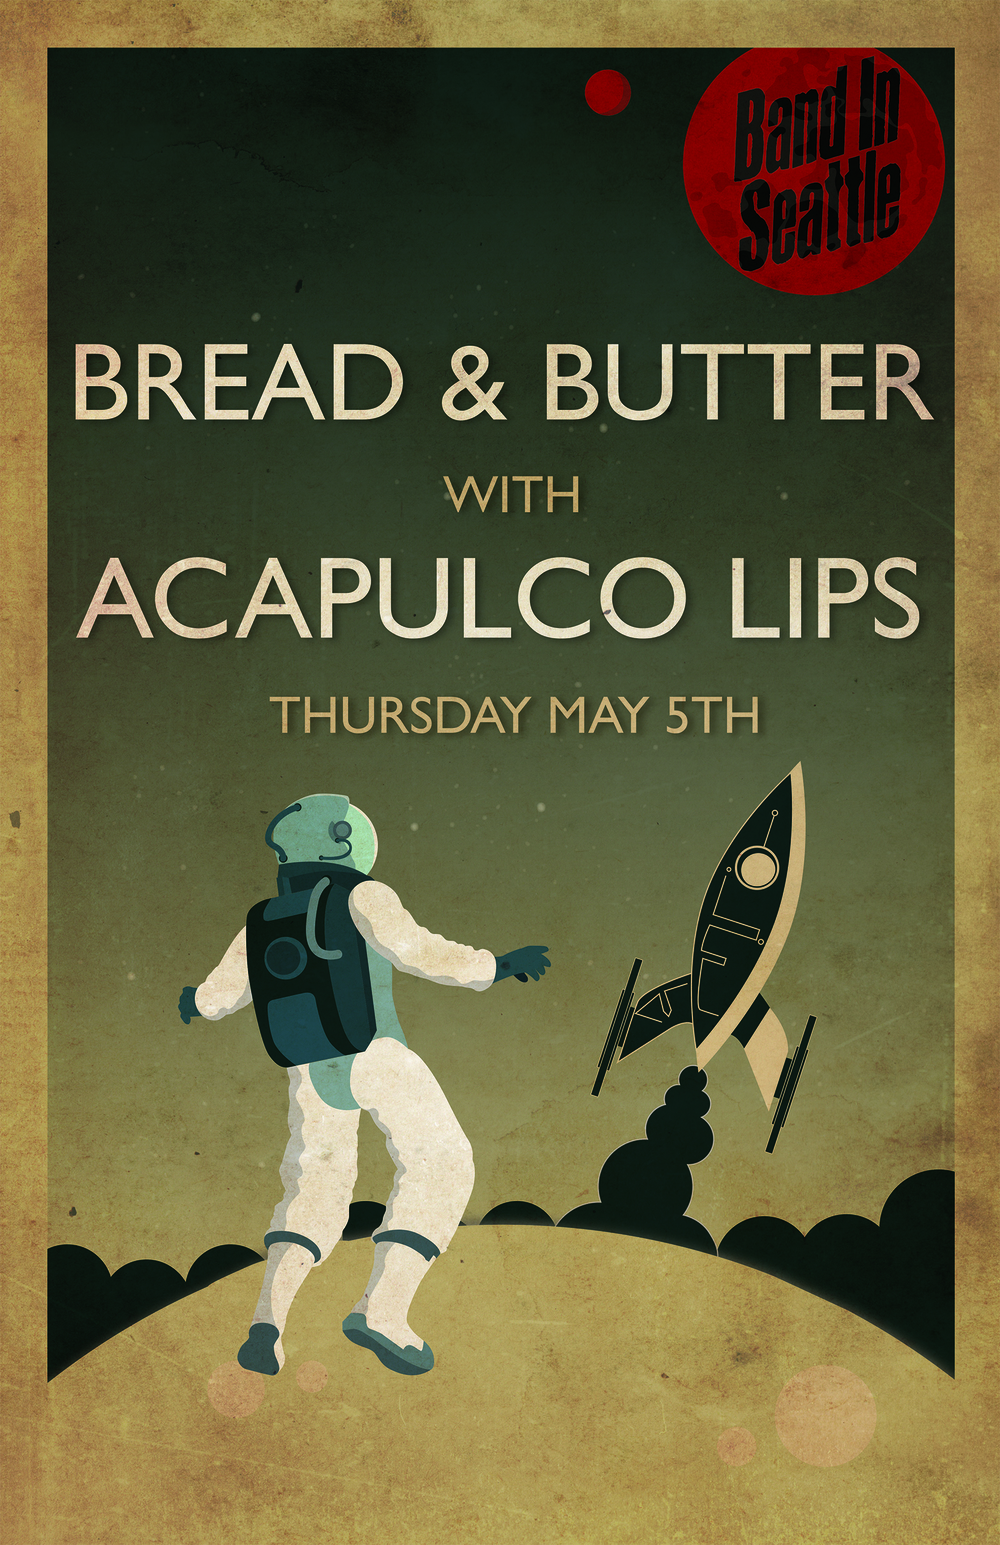 Bread & Butter with Acapulco Lips Poster